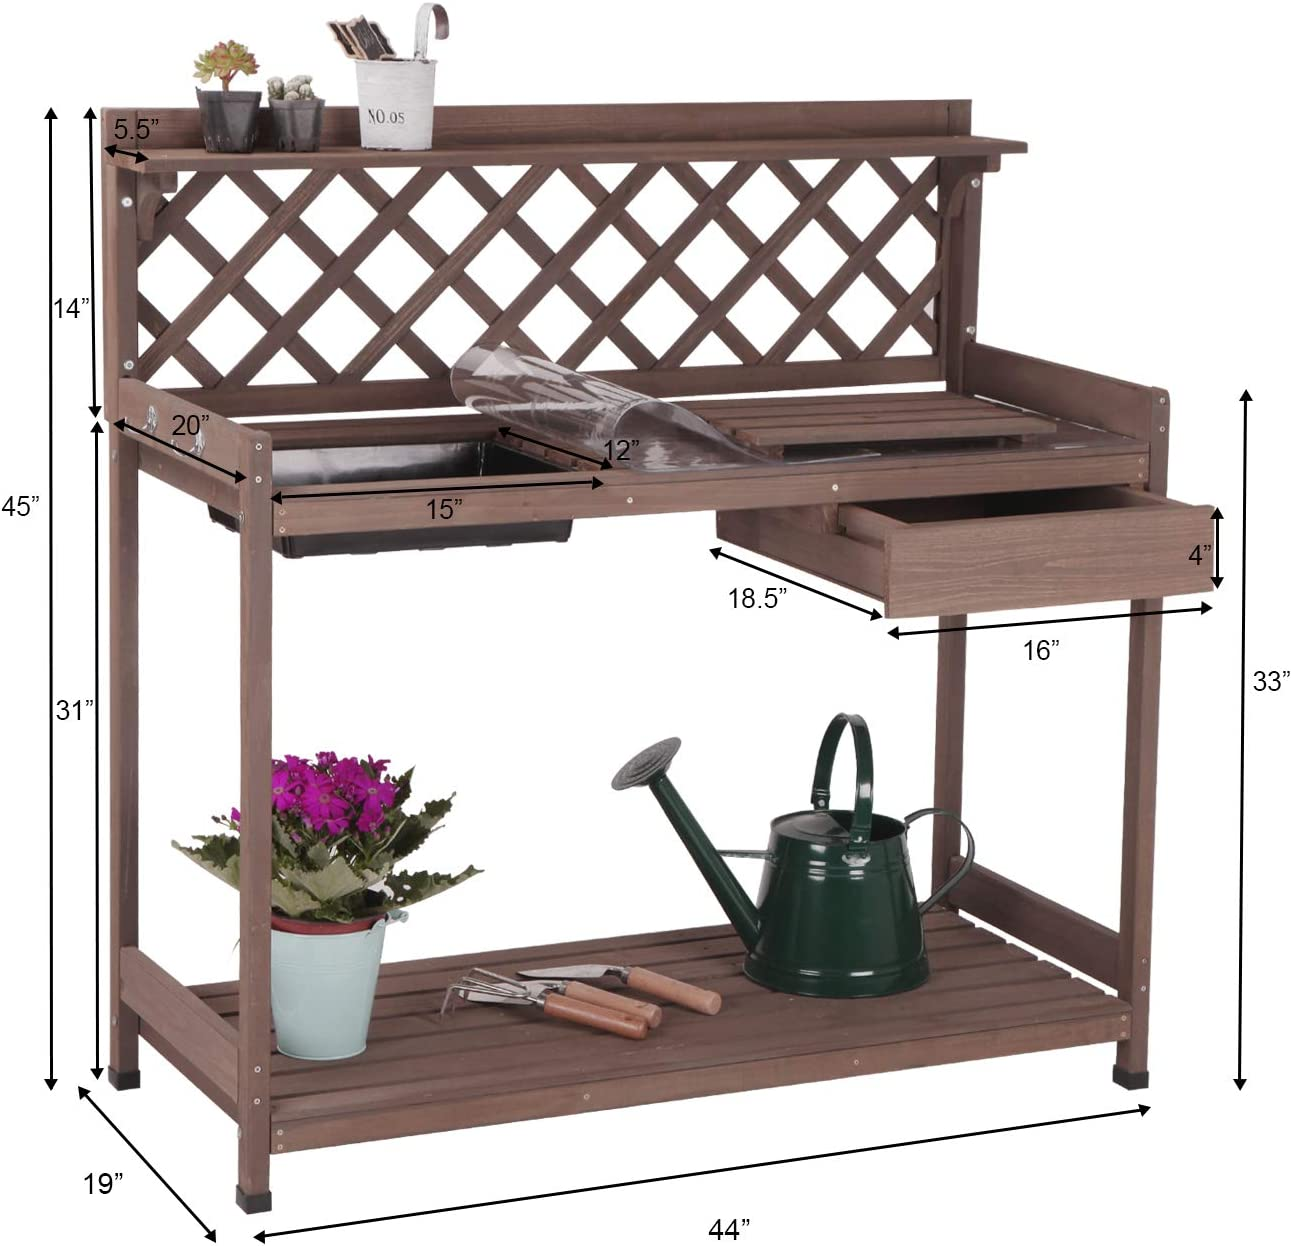 Lakewood 3 Person Swing, Amazon Com Aivituvin Potting Bench With Pvc Layer Outdoor Gardening Work Bench With Sink Lid Wooden Planting Table For Outside With Storage Drawer Shelf Hook Garden Outdoor